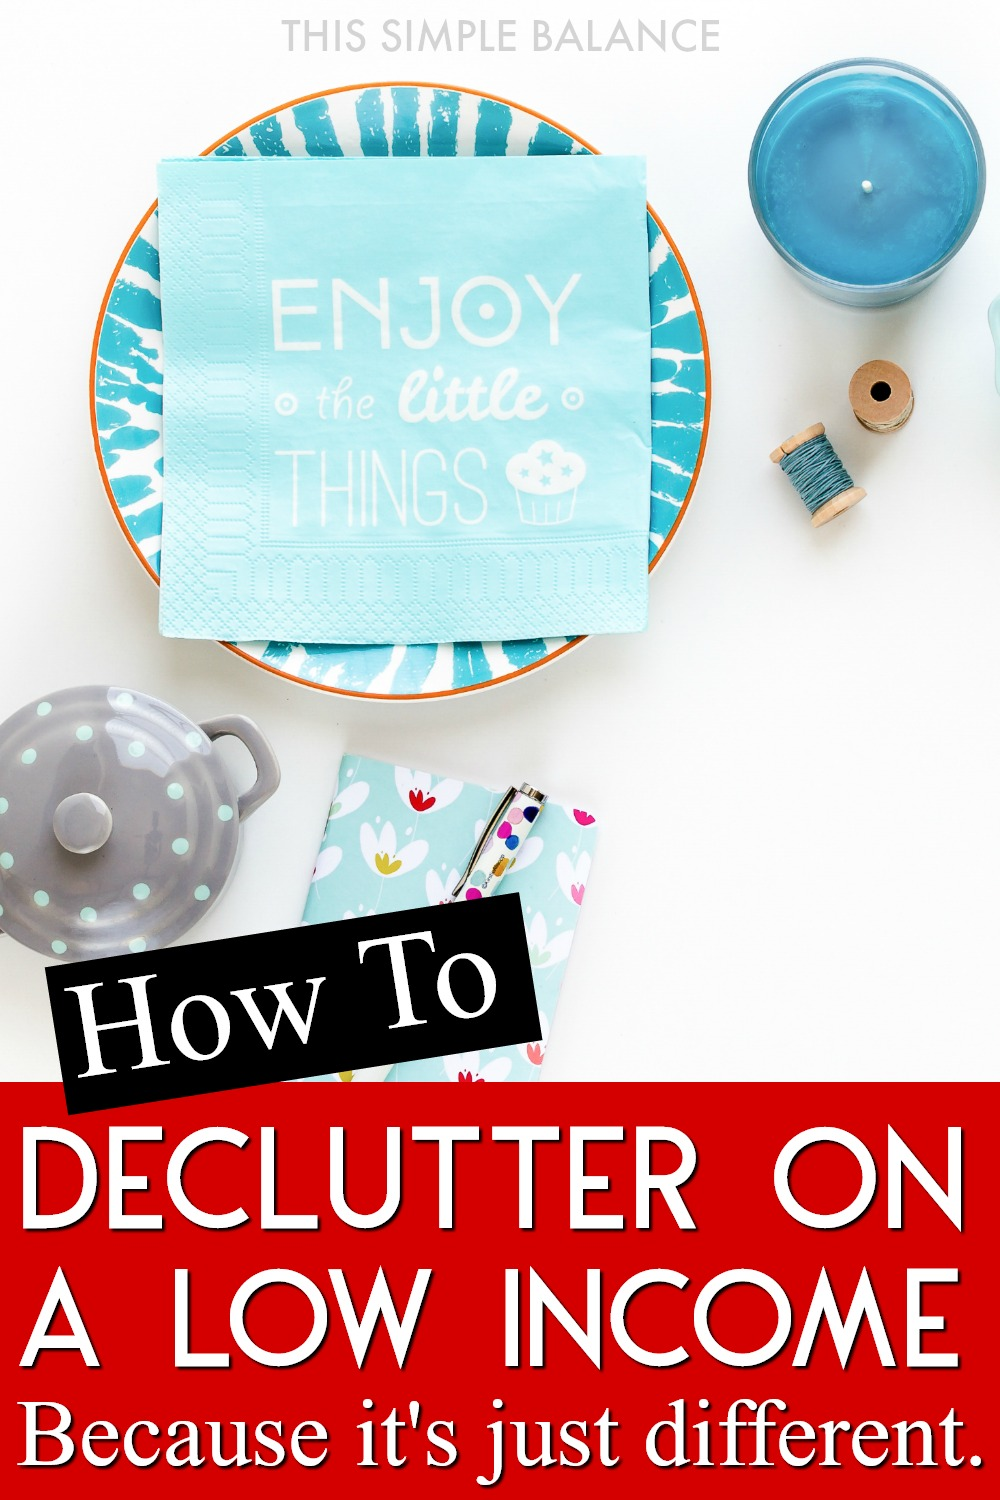 Decluttering on a low income has different challenges than when you are decluttering from a place of excess. Get 8 Decluttering Tips that will help you move forward with decluttering, from someone who knows.